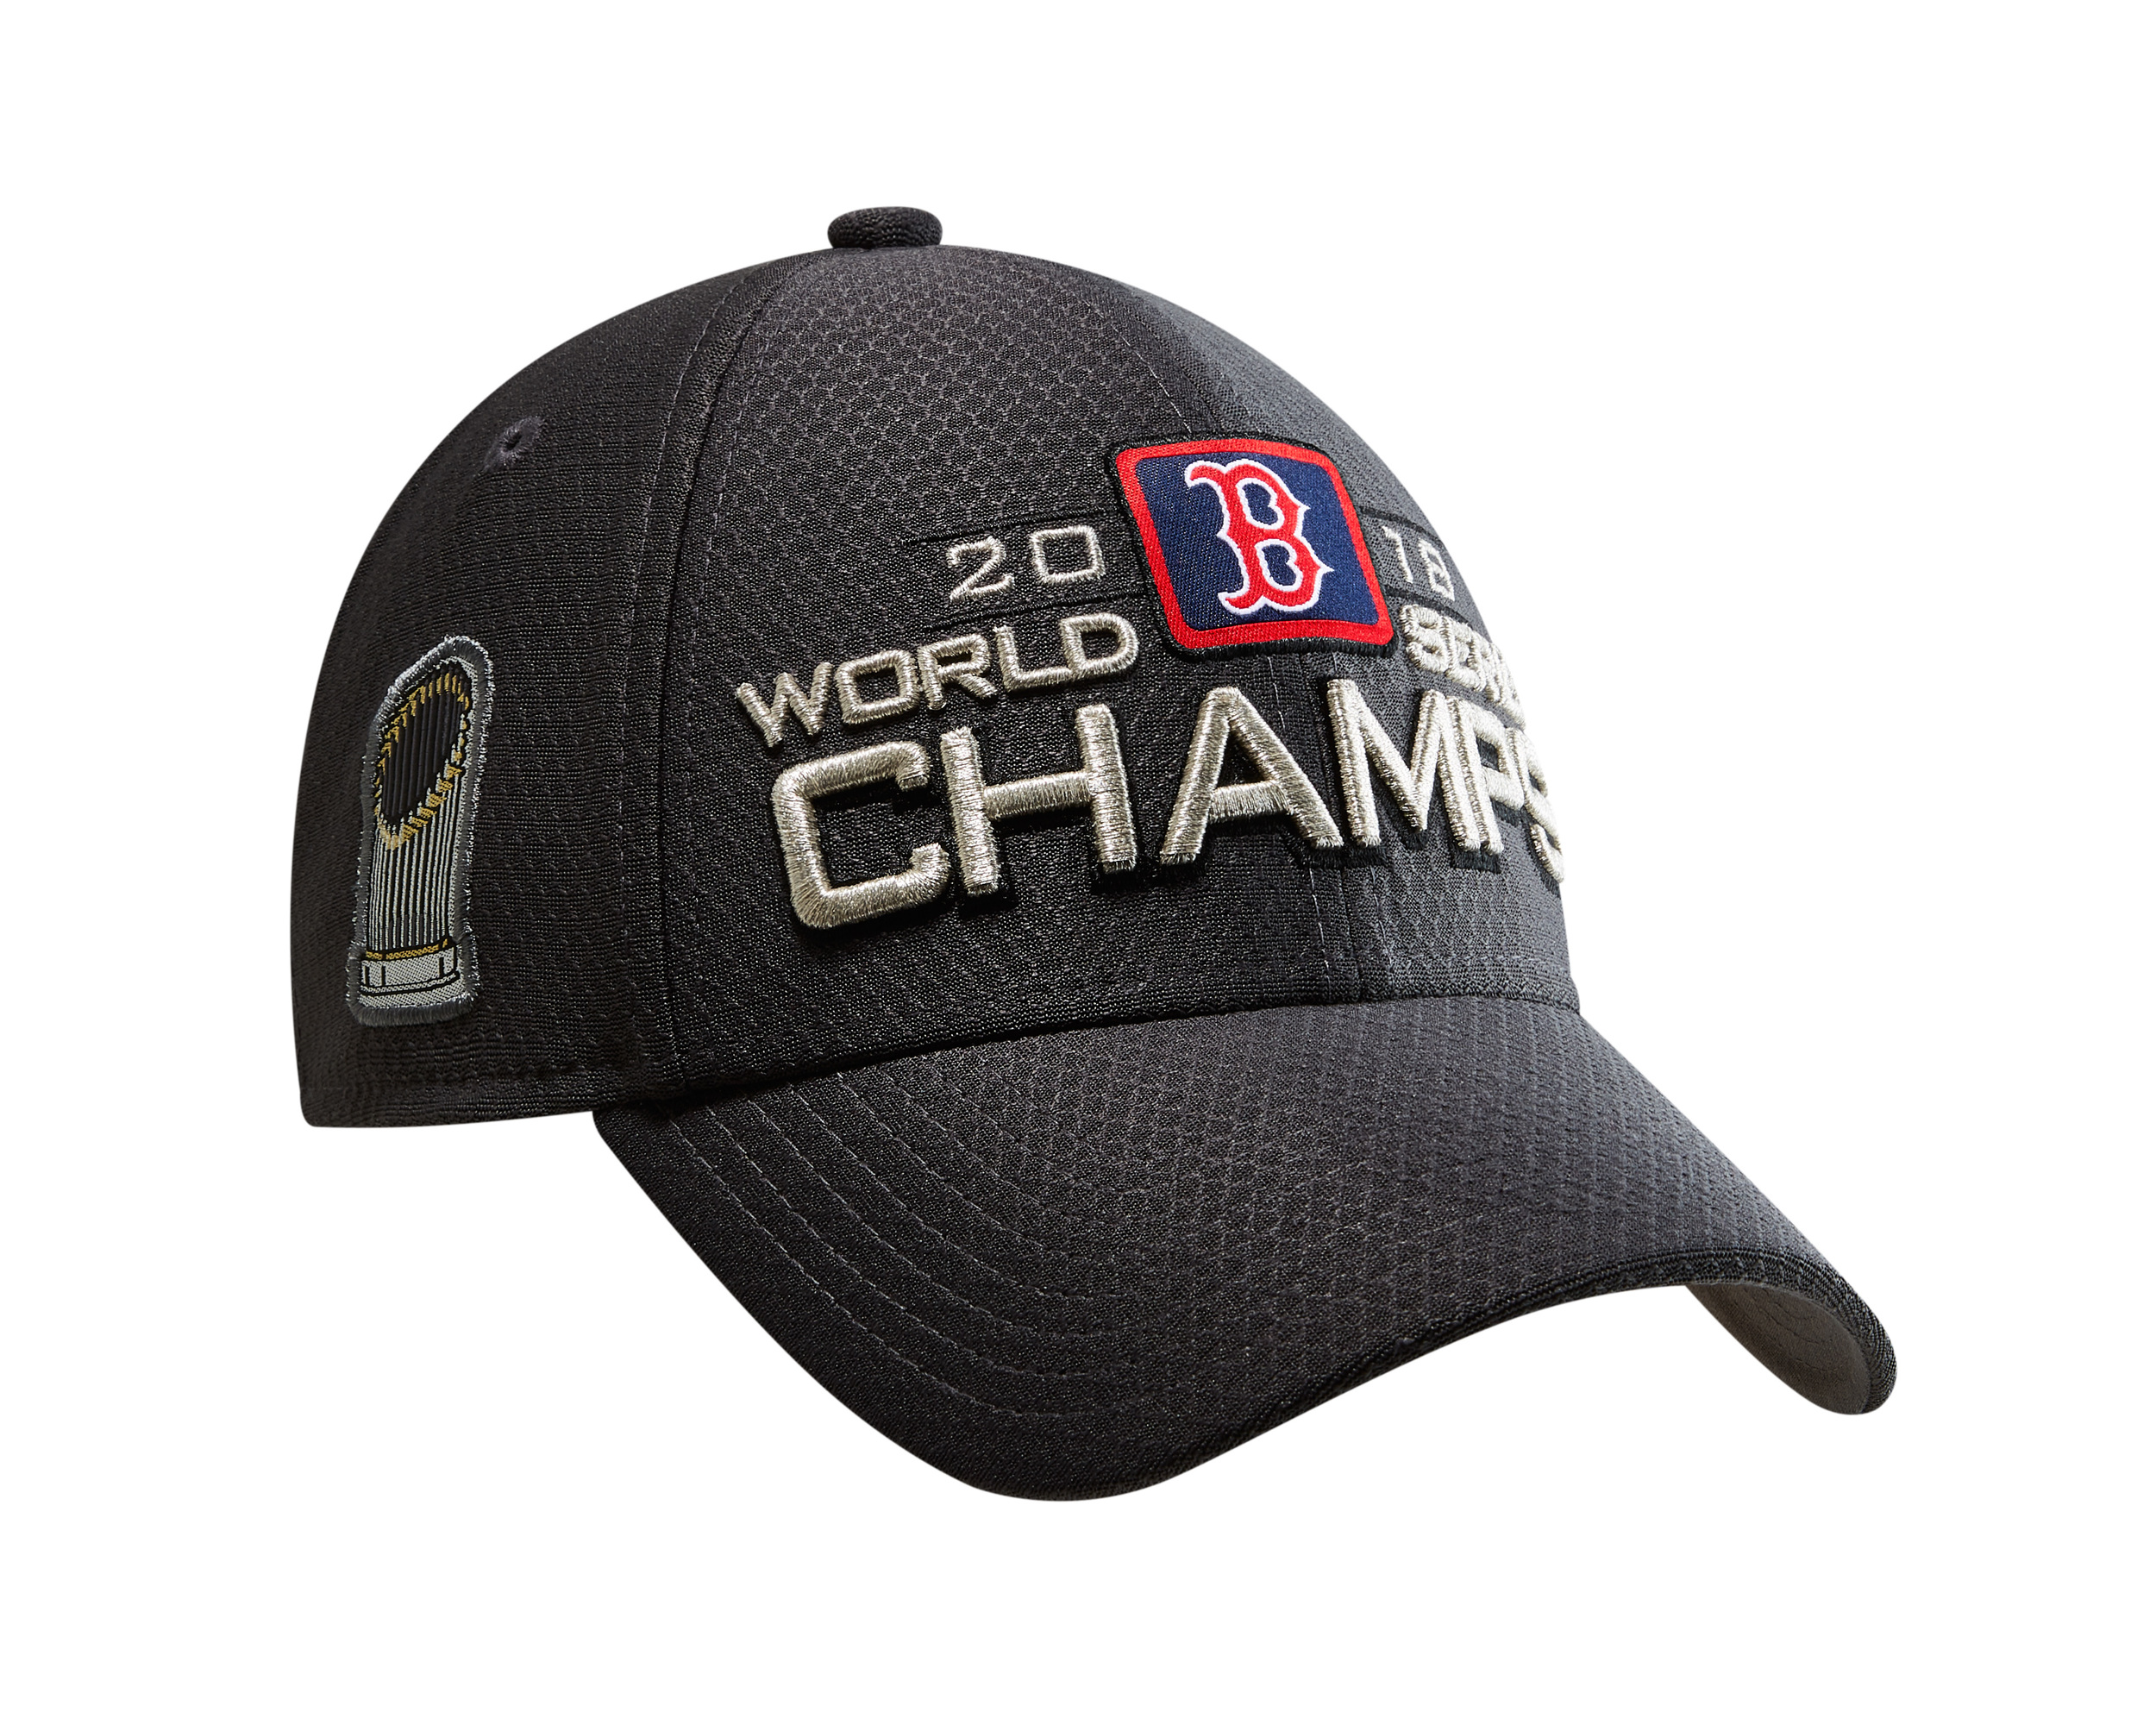 ae92cbdfde45b new era boston red sox world series hat official site